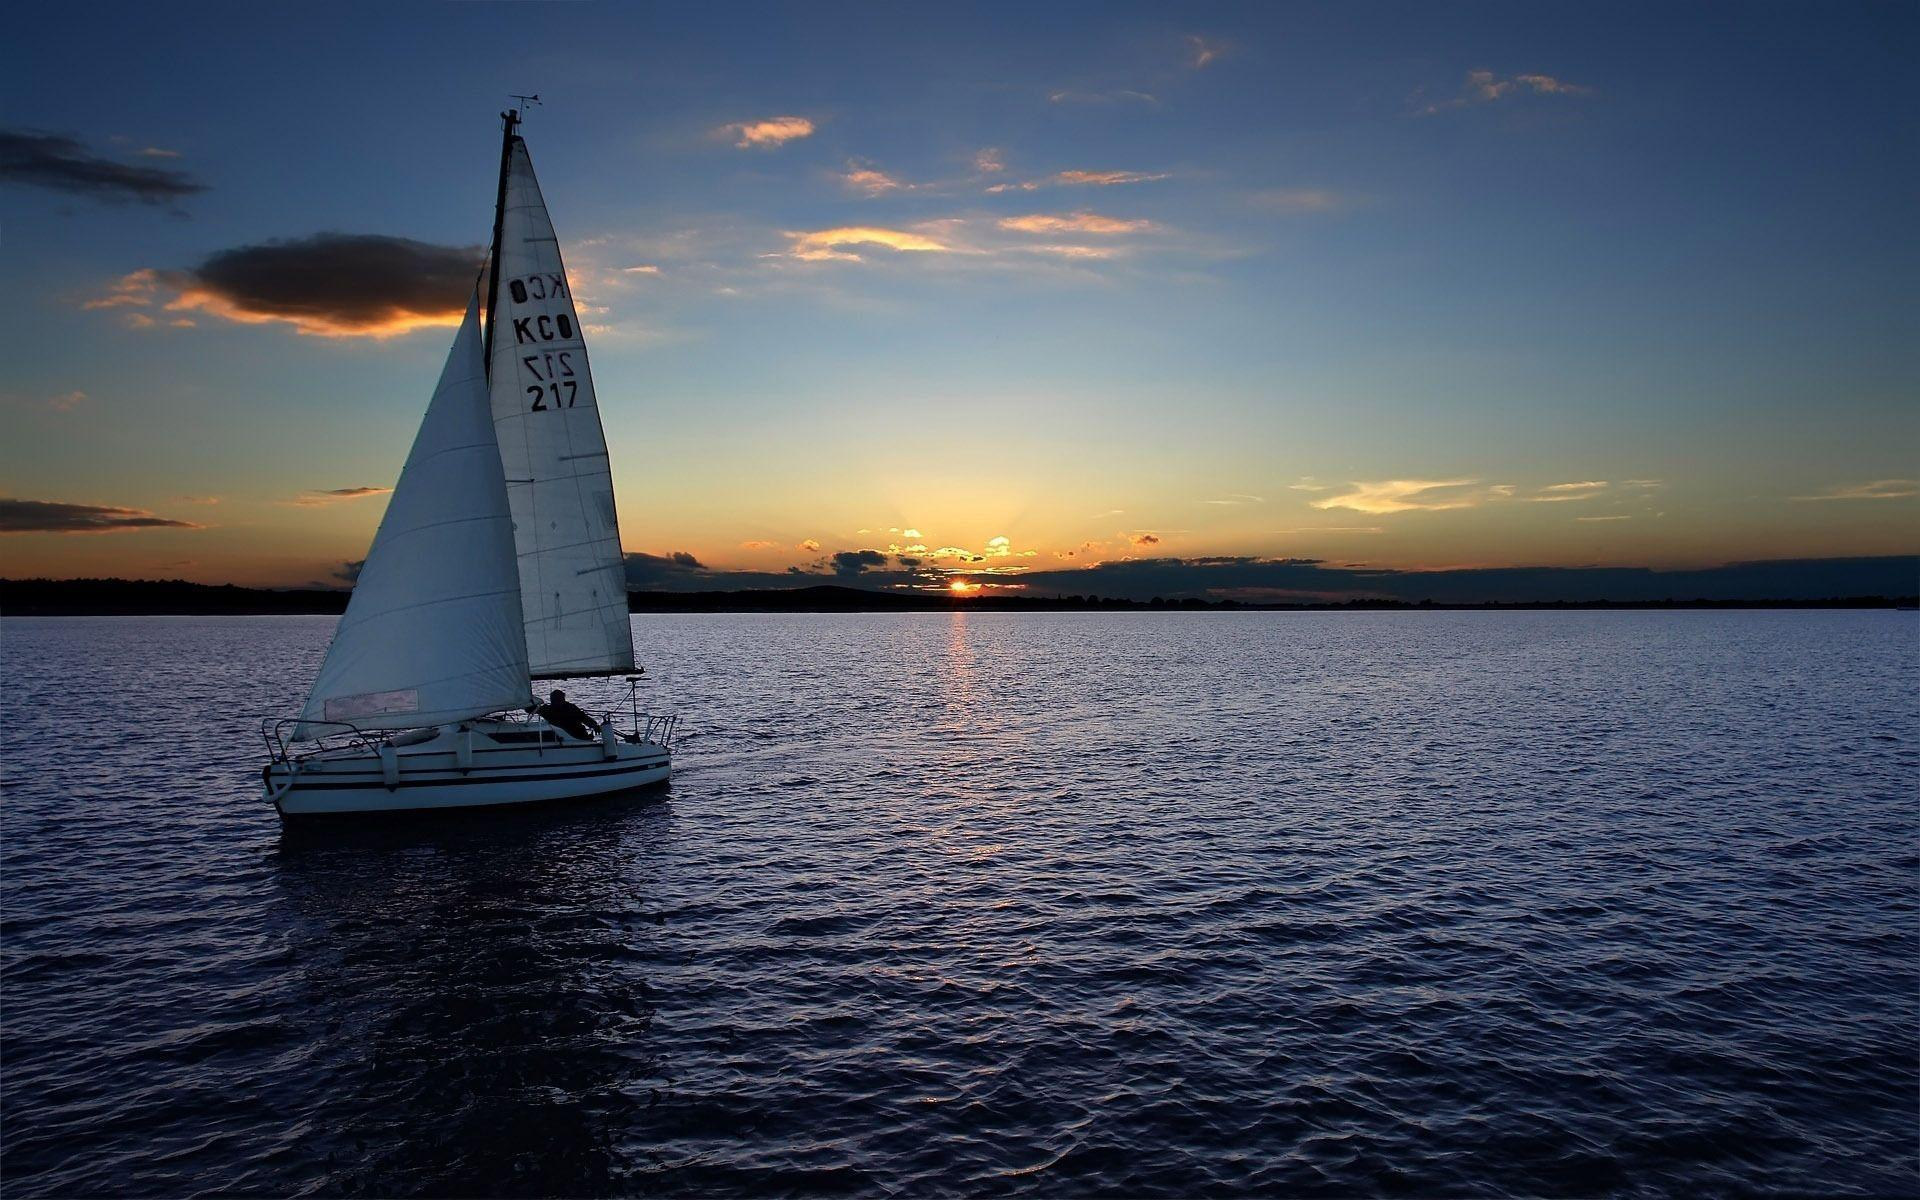 hungry for sailboat wallpaper - photo #2